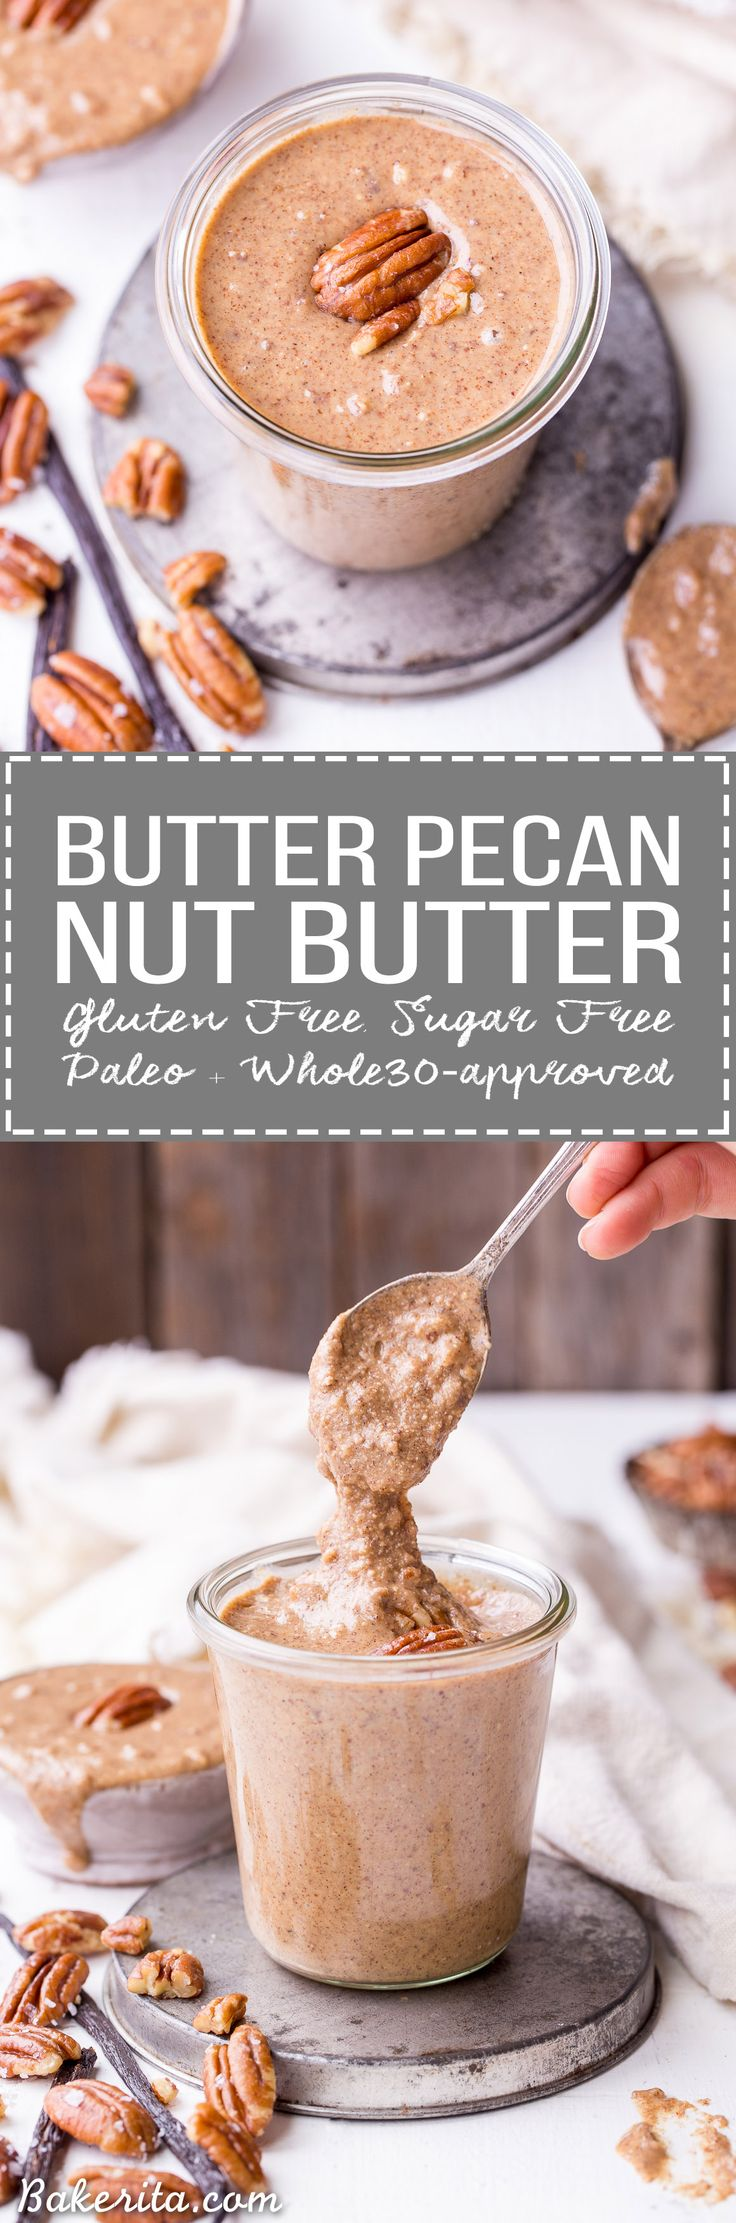 This Butter Pecan Nut Butter is smooth and creamy, with crunchy pecan bits stirred in and all the butter pecan flavor you love! This simple-to-make spread is perfect on oatmeal, fruit, toast, or just eaten with a spoon. It's gluten free, sugar free, paleo, and Whole30-approved.